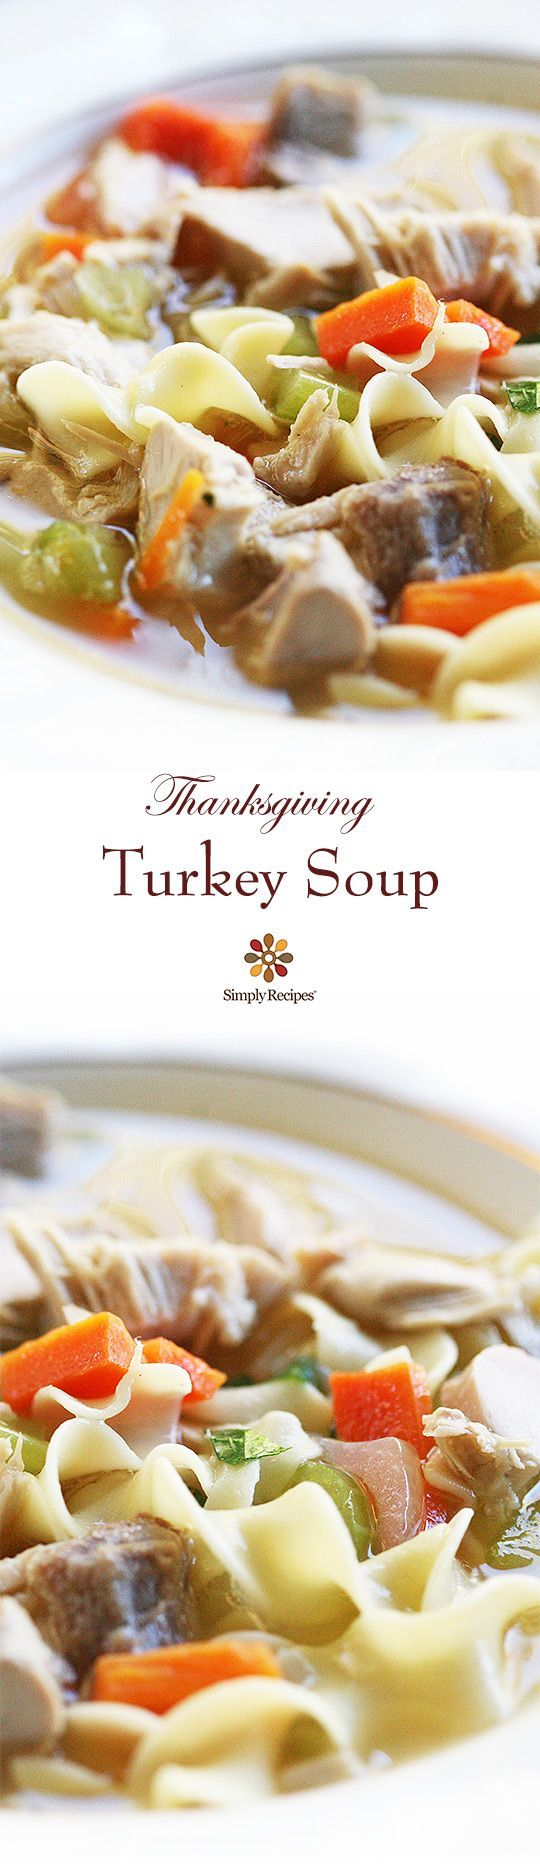 Need to do something with leftover turkey this Thanksgiving? Here's a great idea.